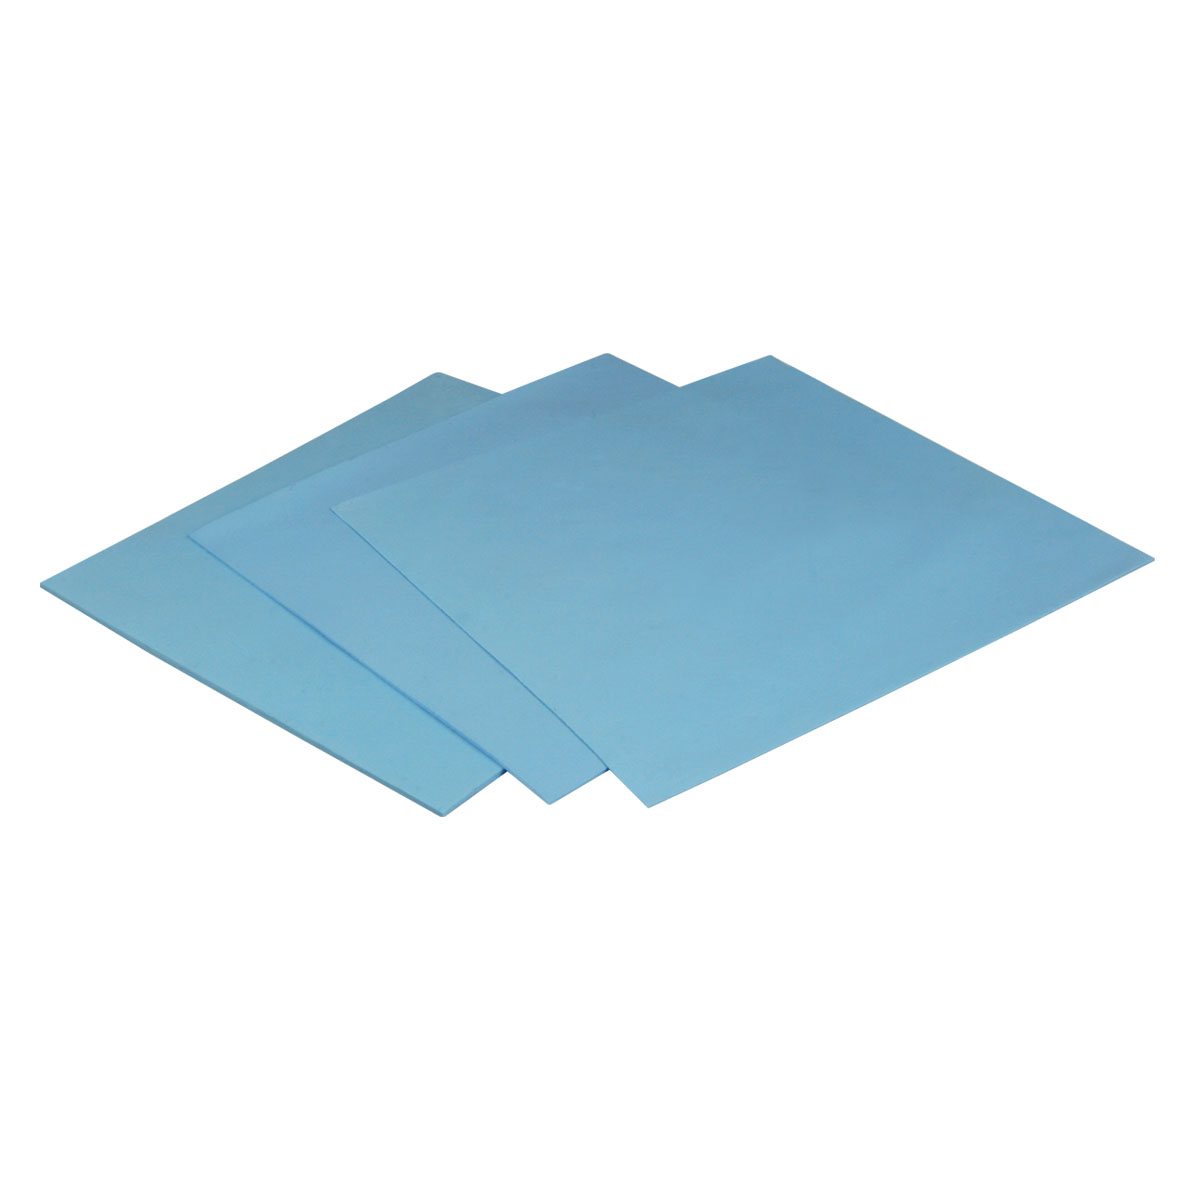 Artic Termal Pad 0.5mm